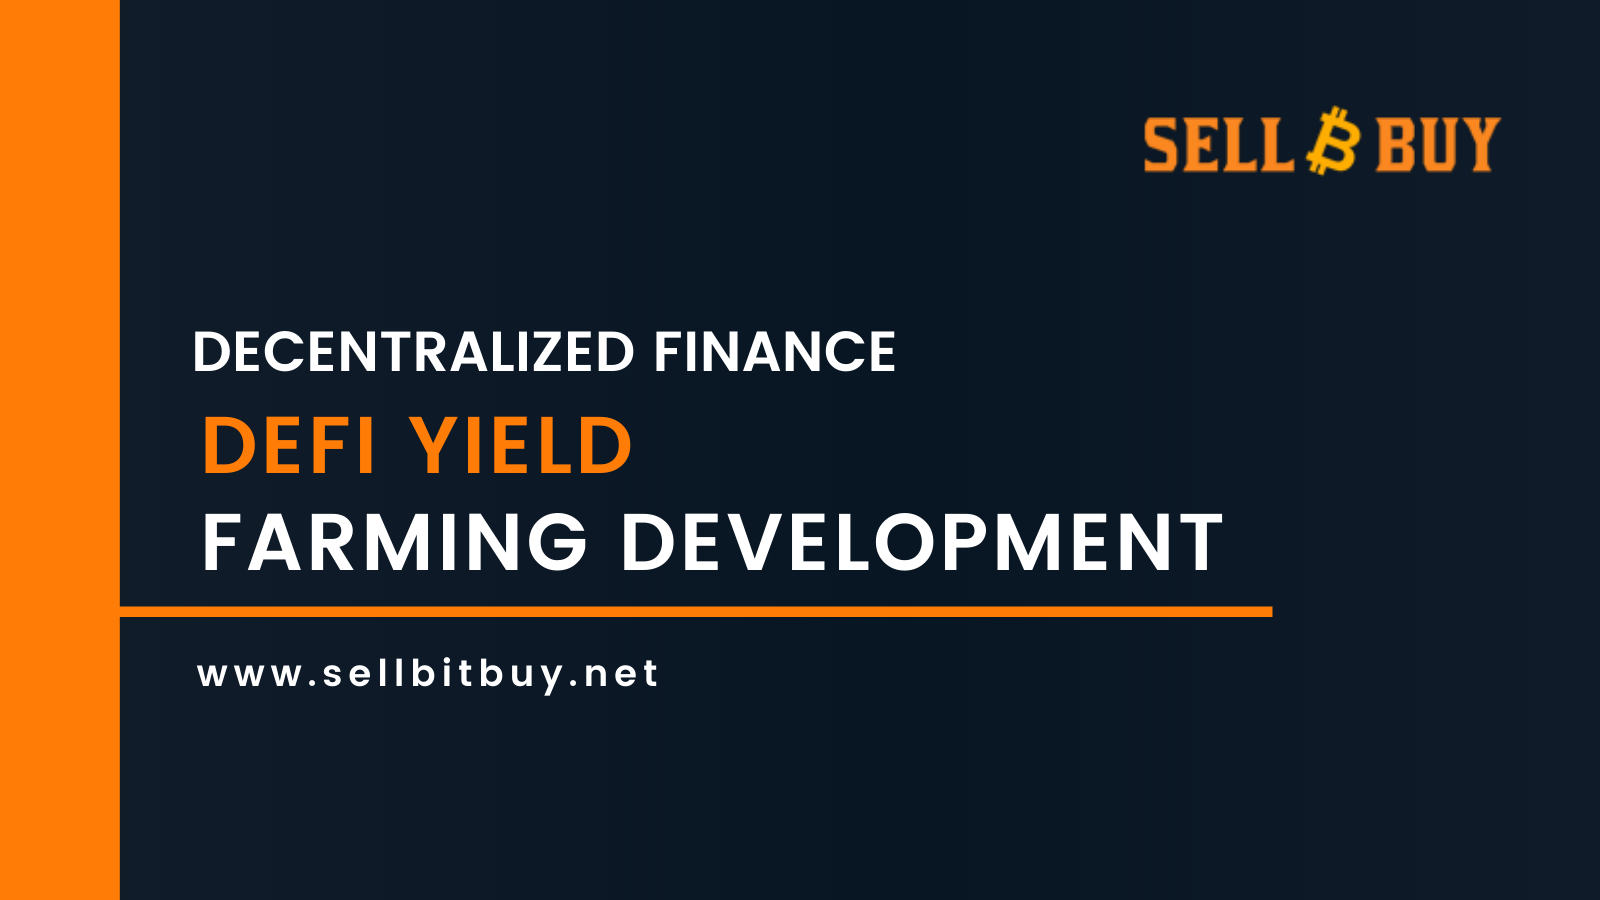 DeFi Yield Farming Development Services and Solutions